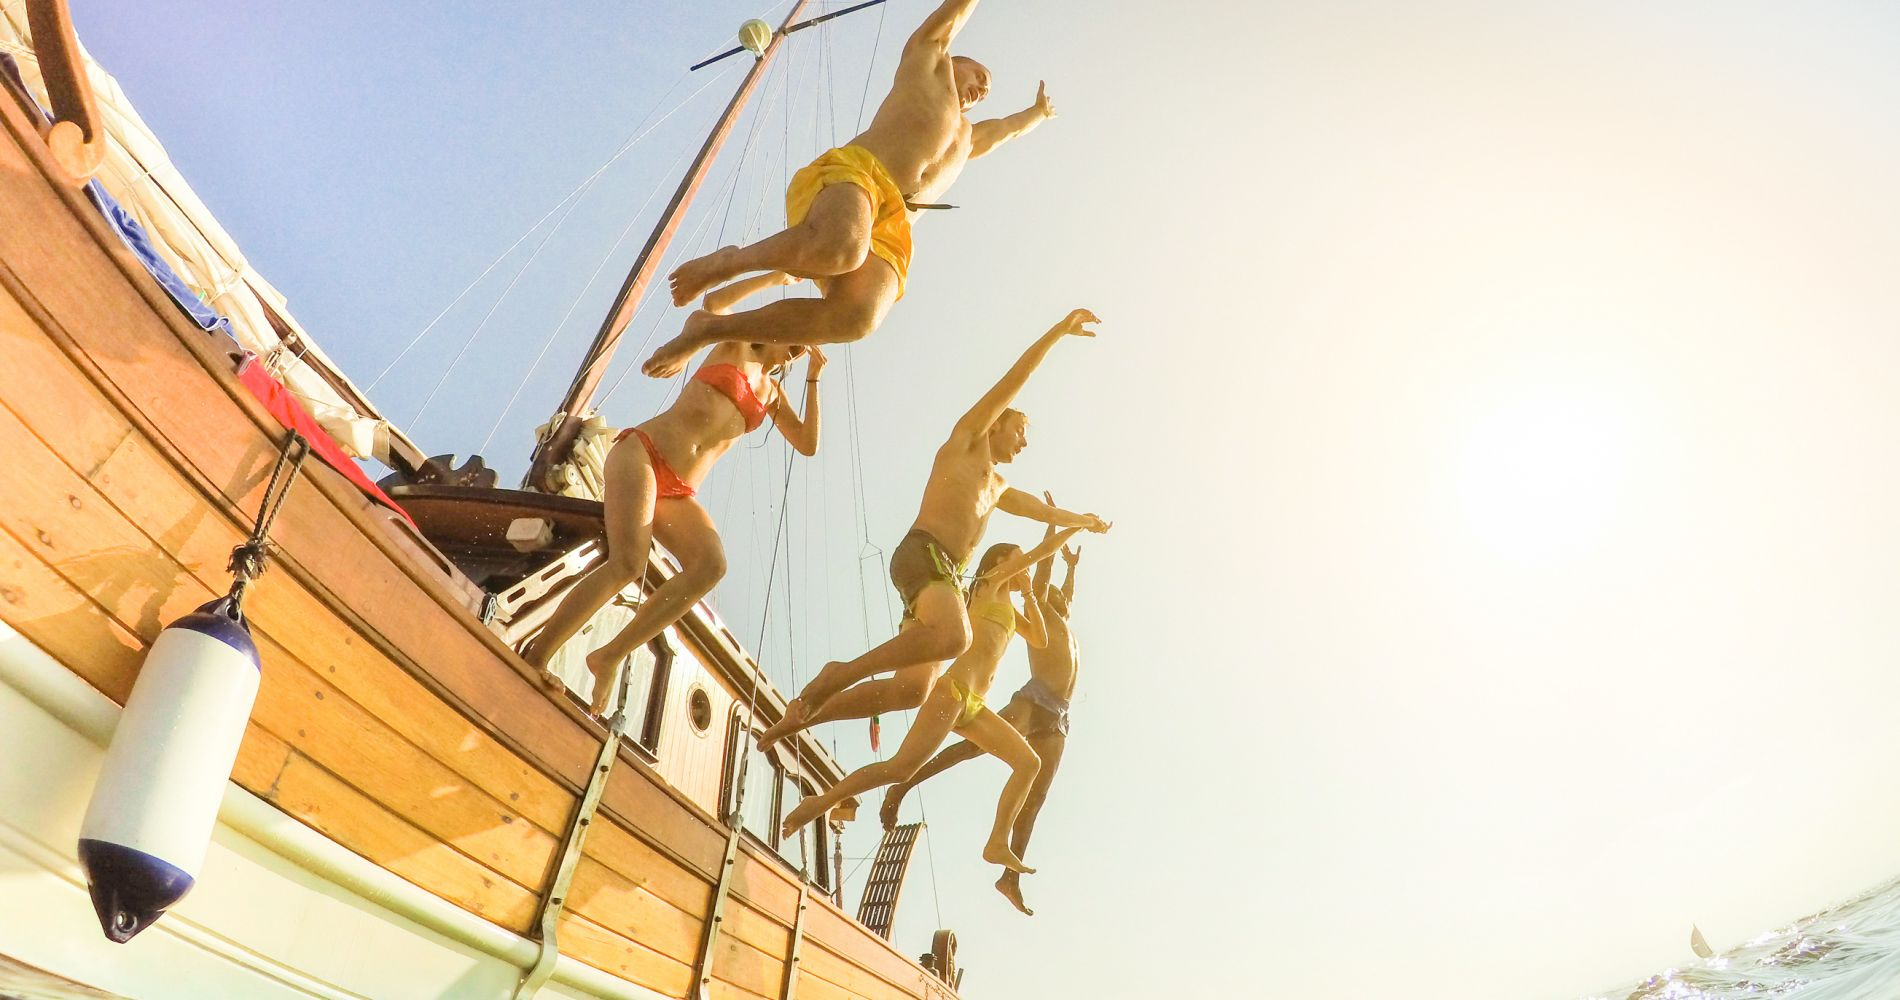 Pirate Boat Party with Drinks & Food in Malta for Two